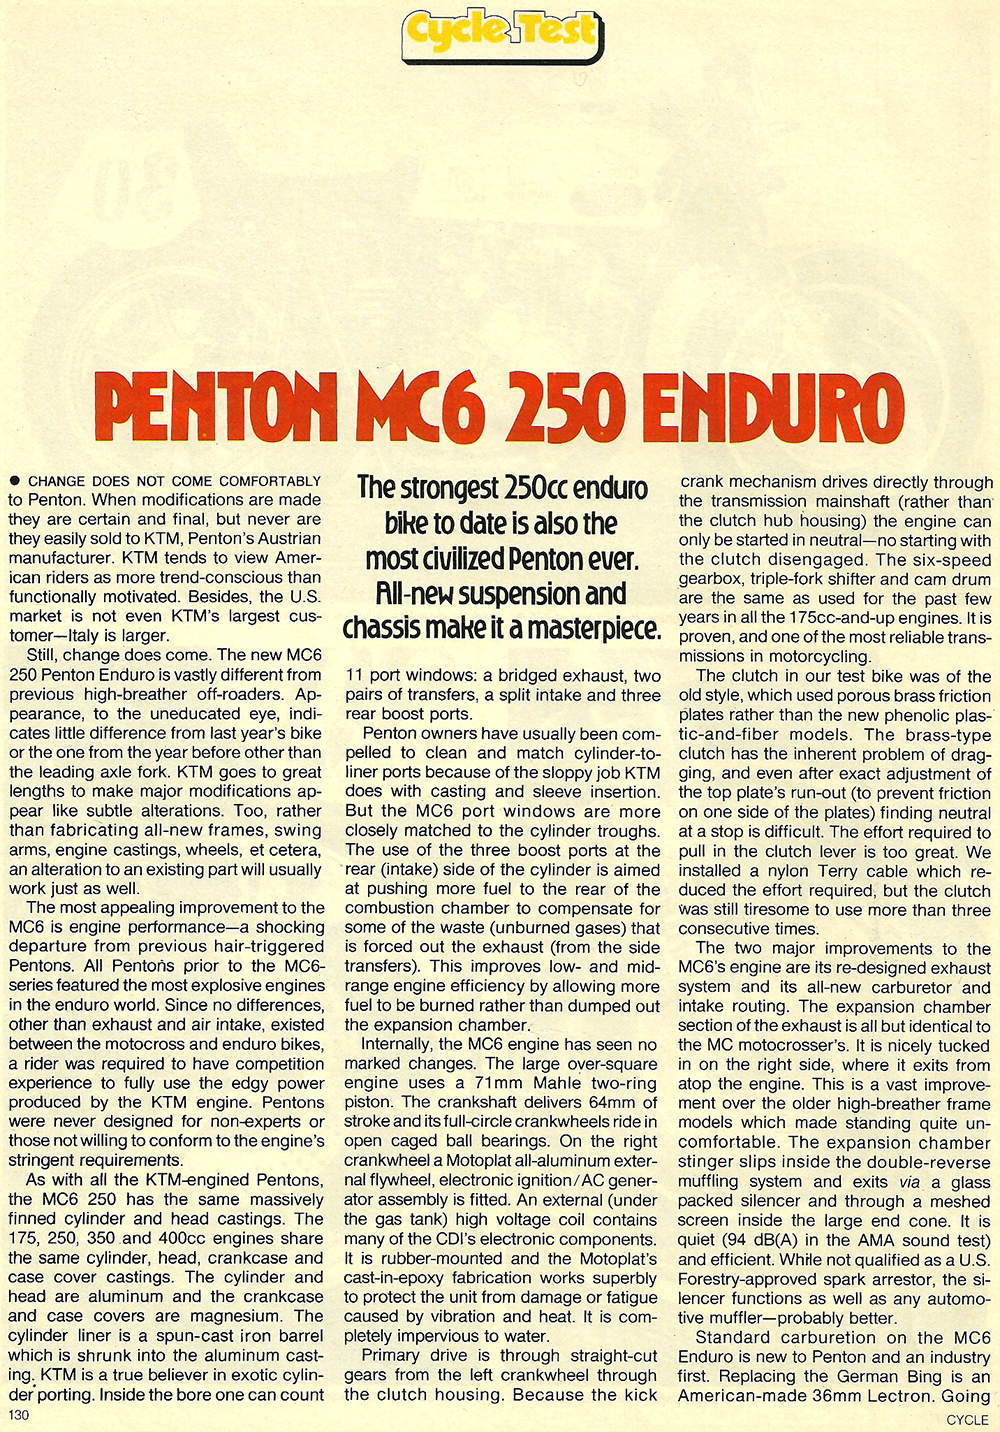 1977 Penton MC6 250 Enduro road test 1.jpg